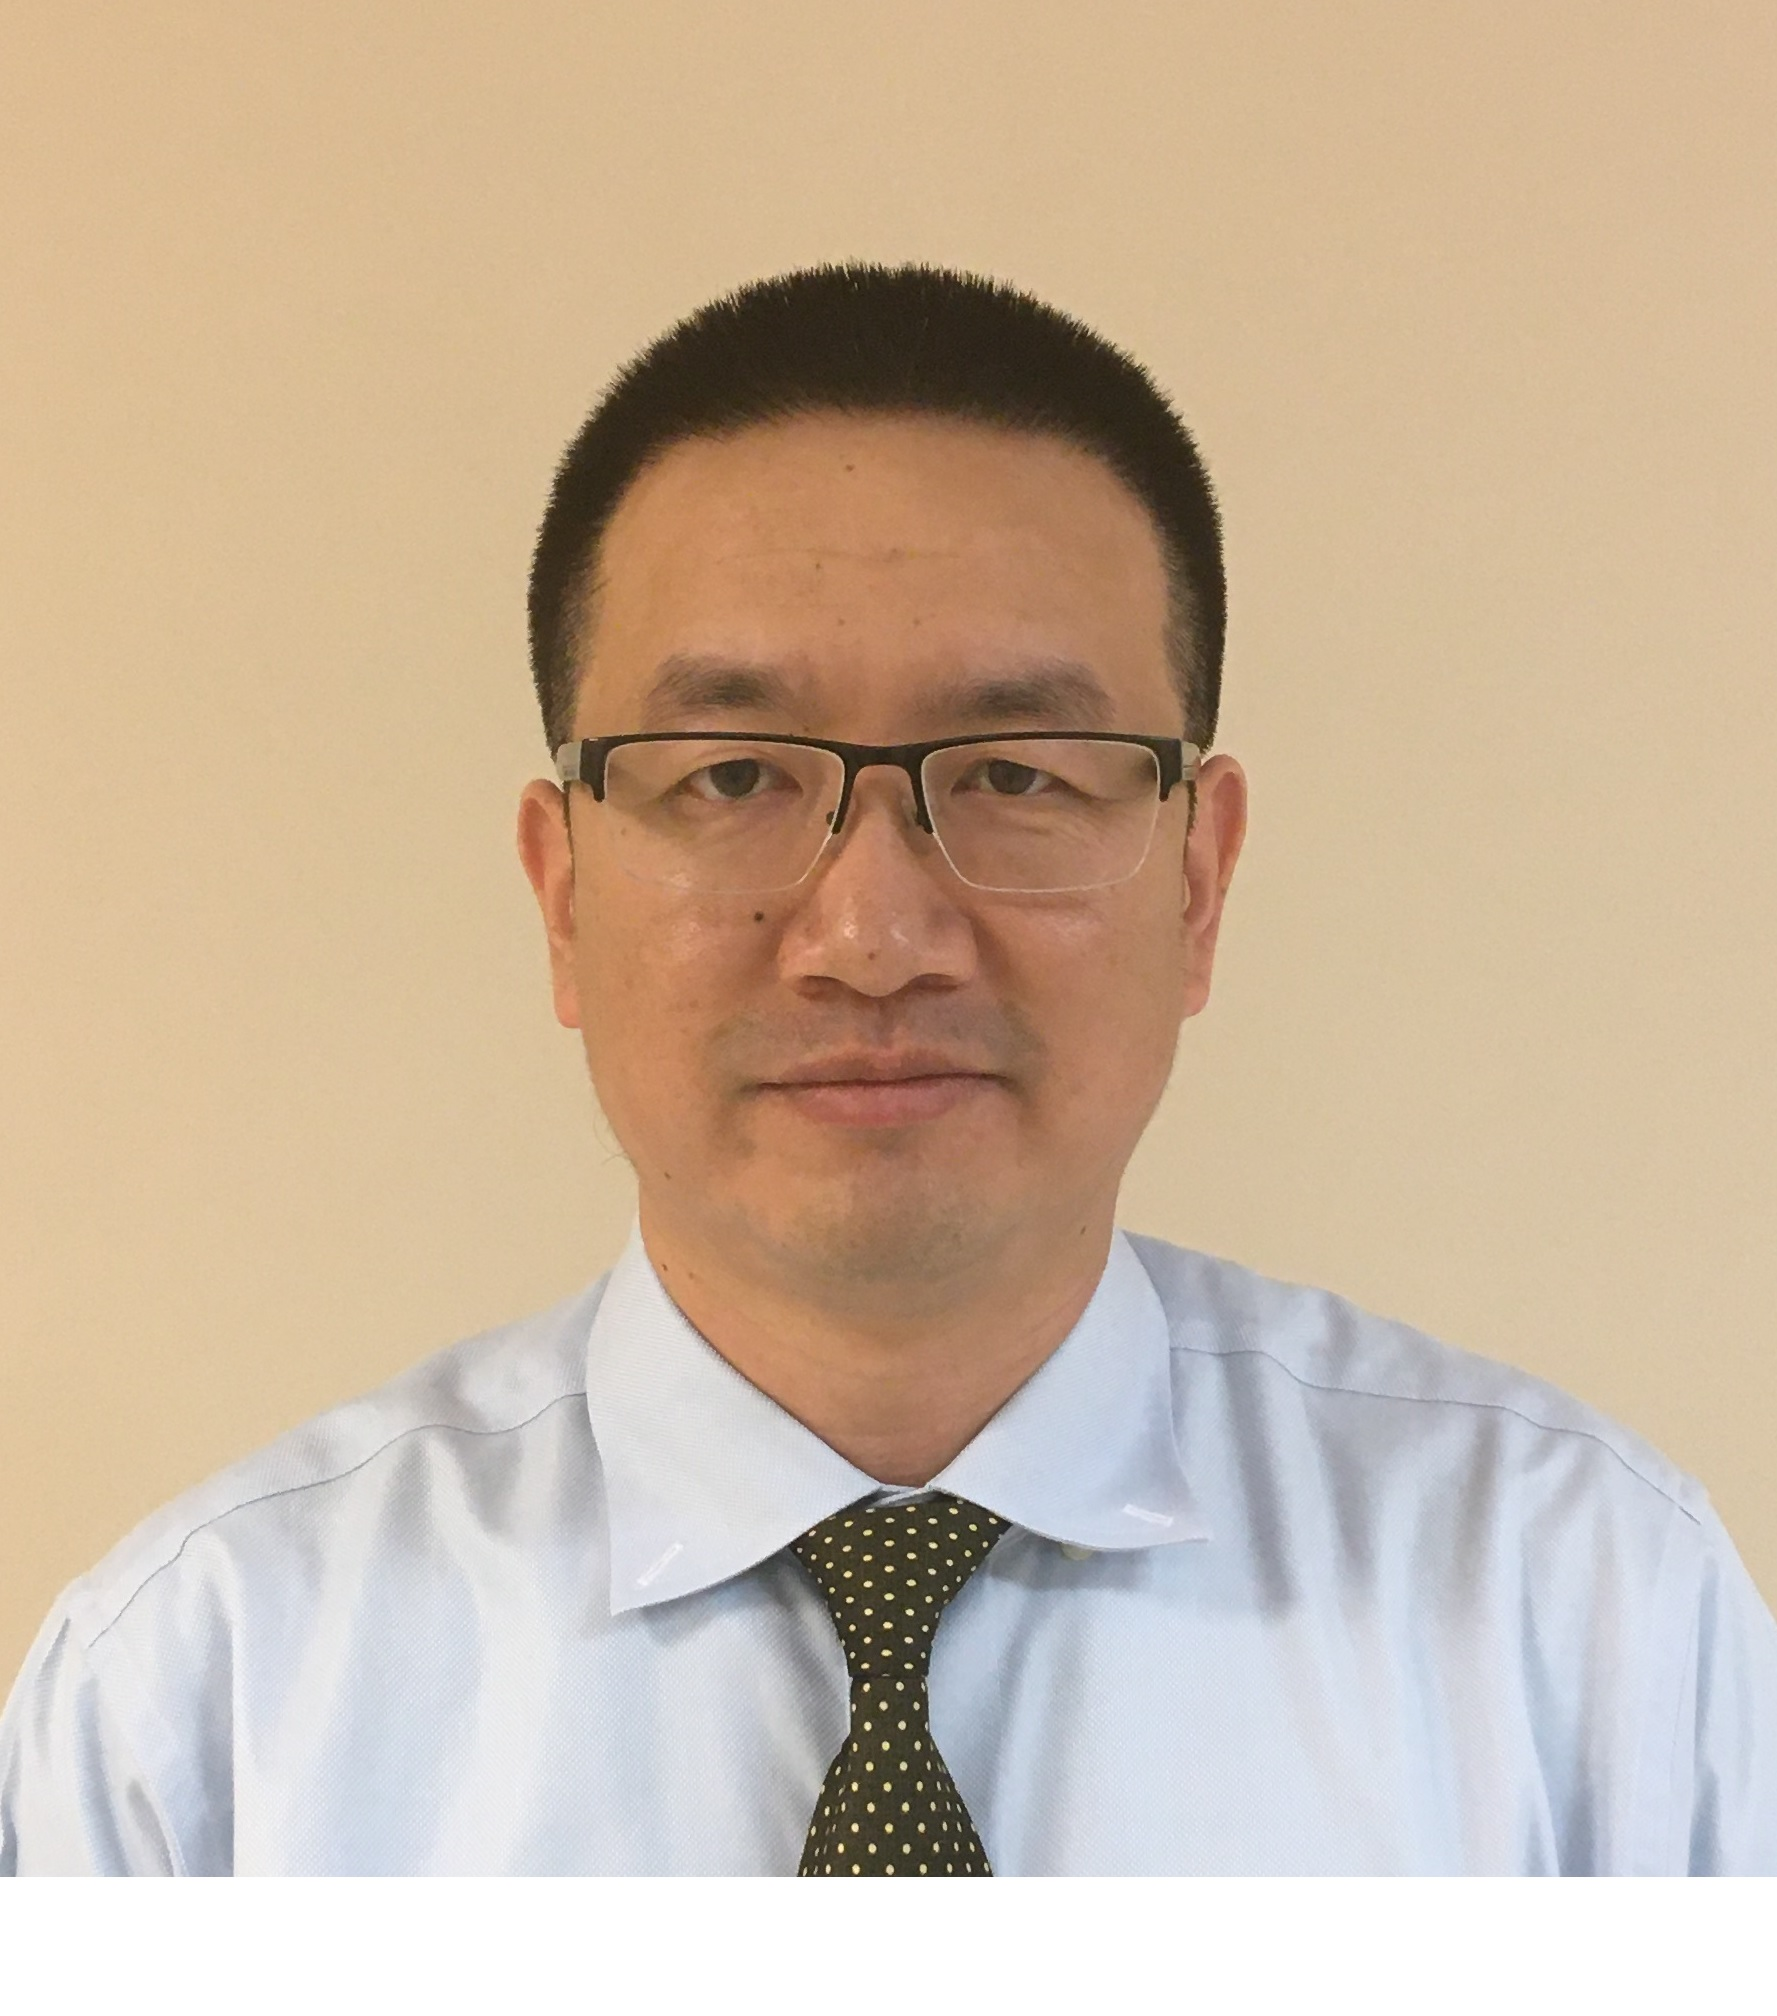 Zhicheng Jin, Ph.D.